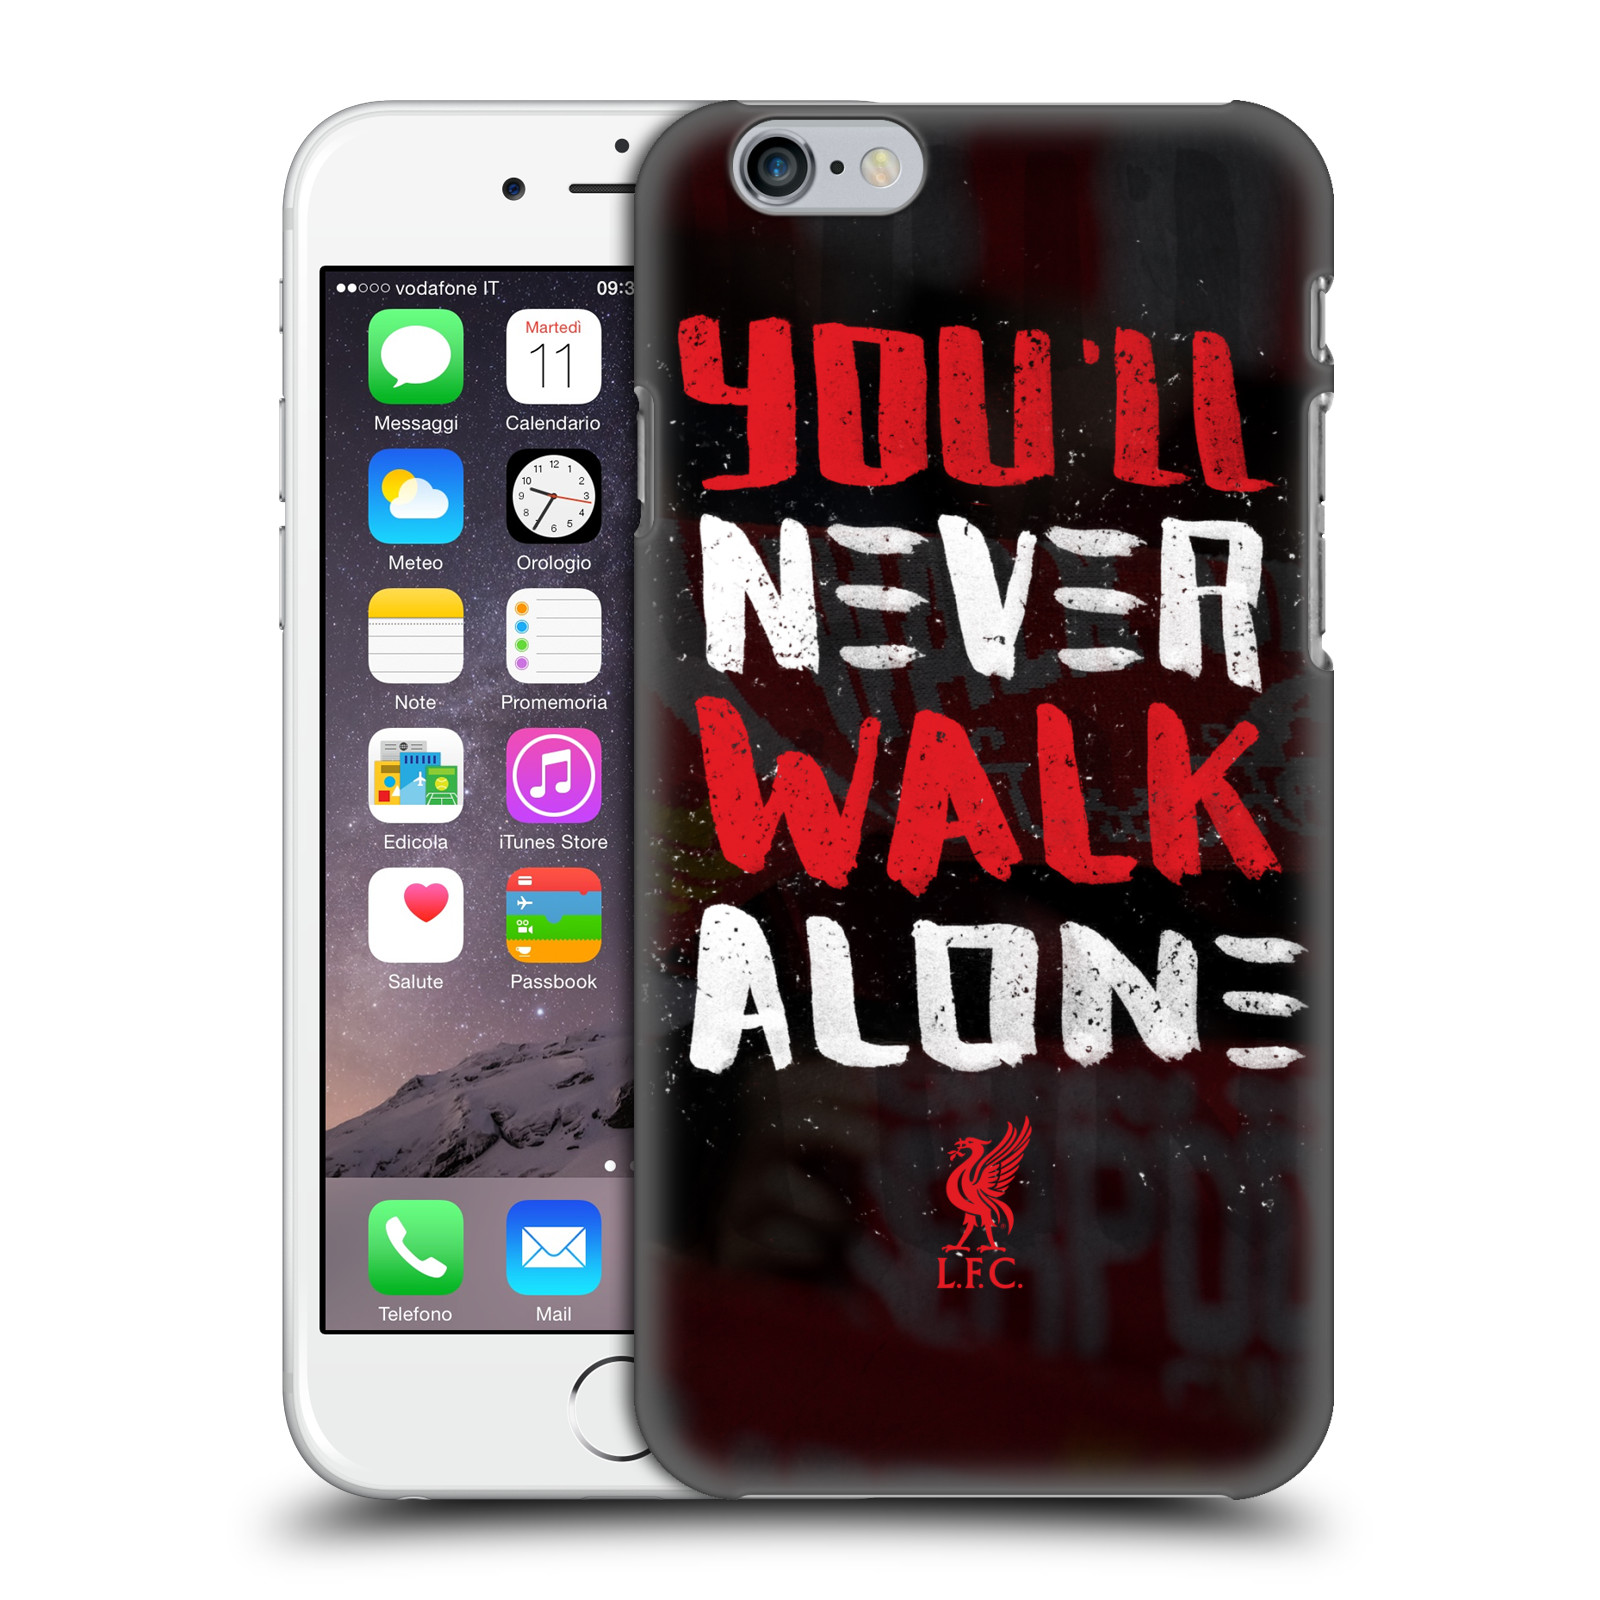 Liverpool FC LFC You'll Never Walk Alone-Kop 4